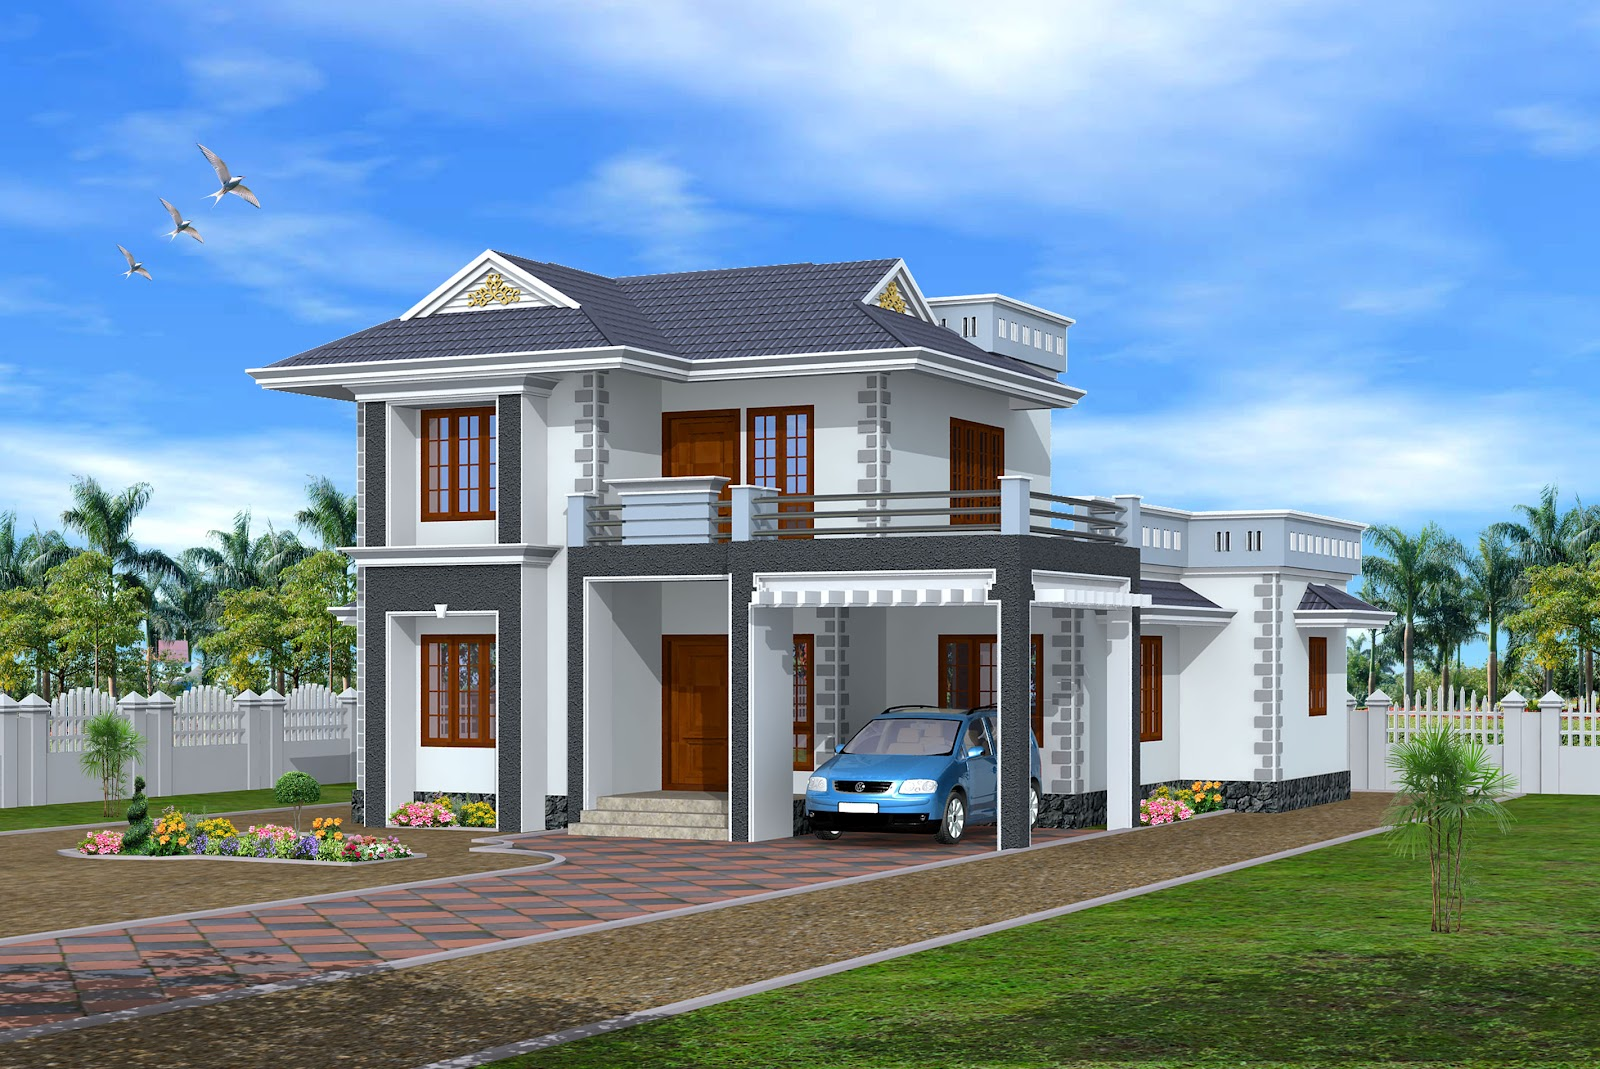 New home designs latest modern homes exterior designs views for Latest modern house plans